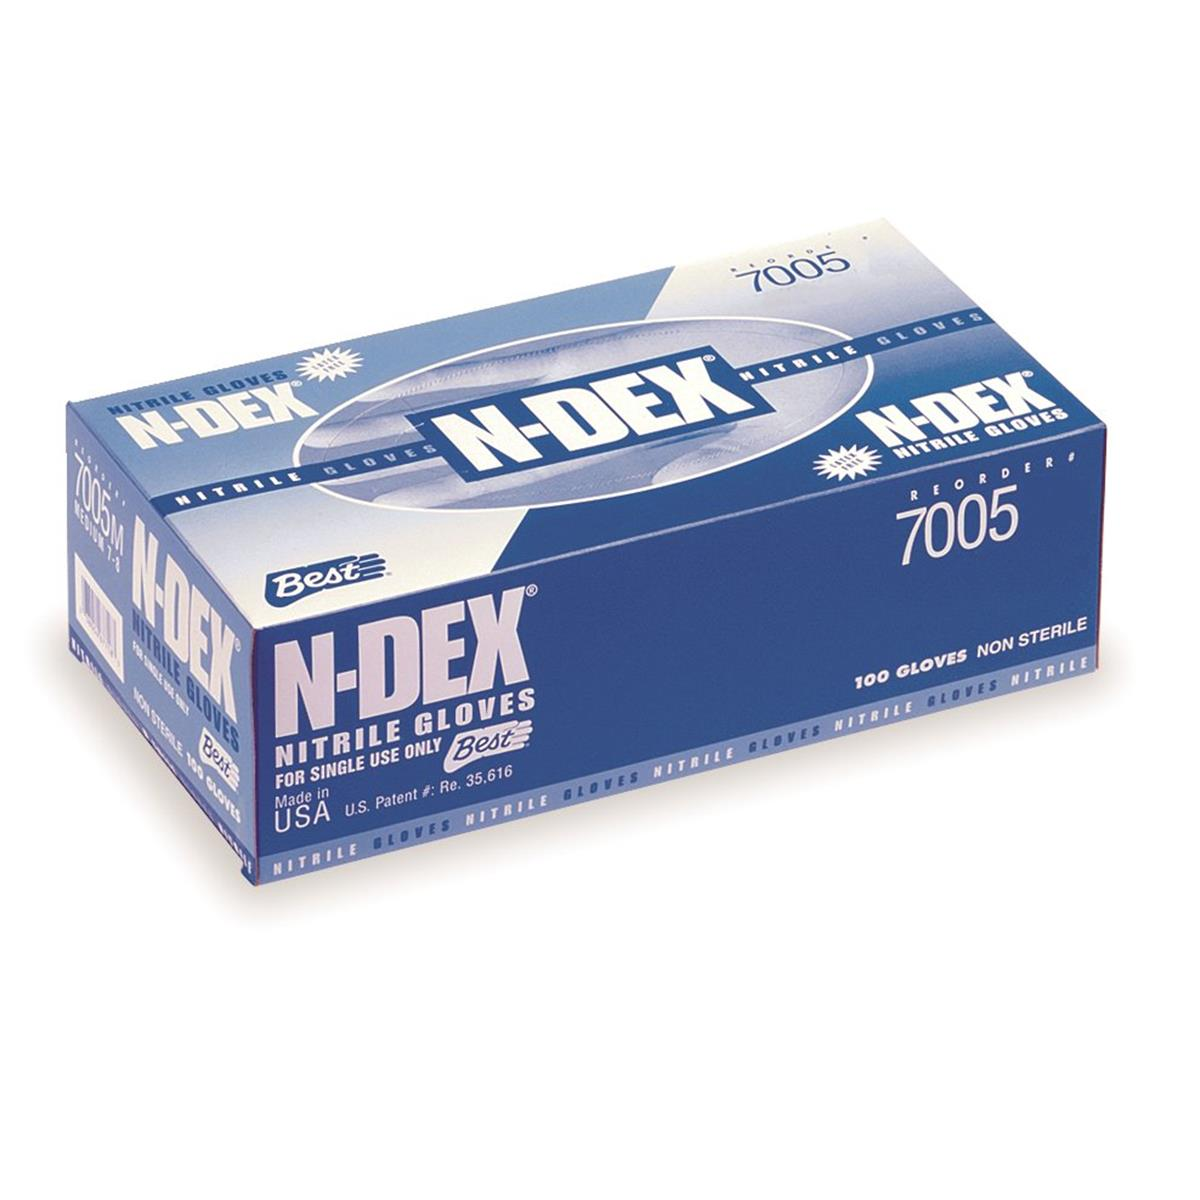 SHOWA BEST N-DEX® 4-mil Nitrile Gloves